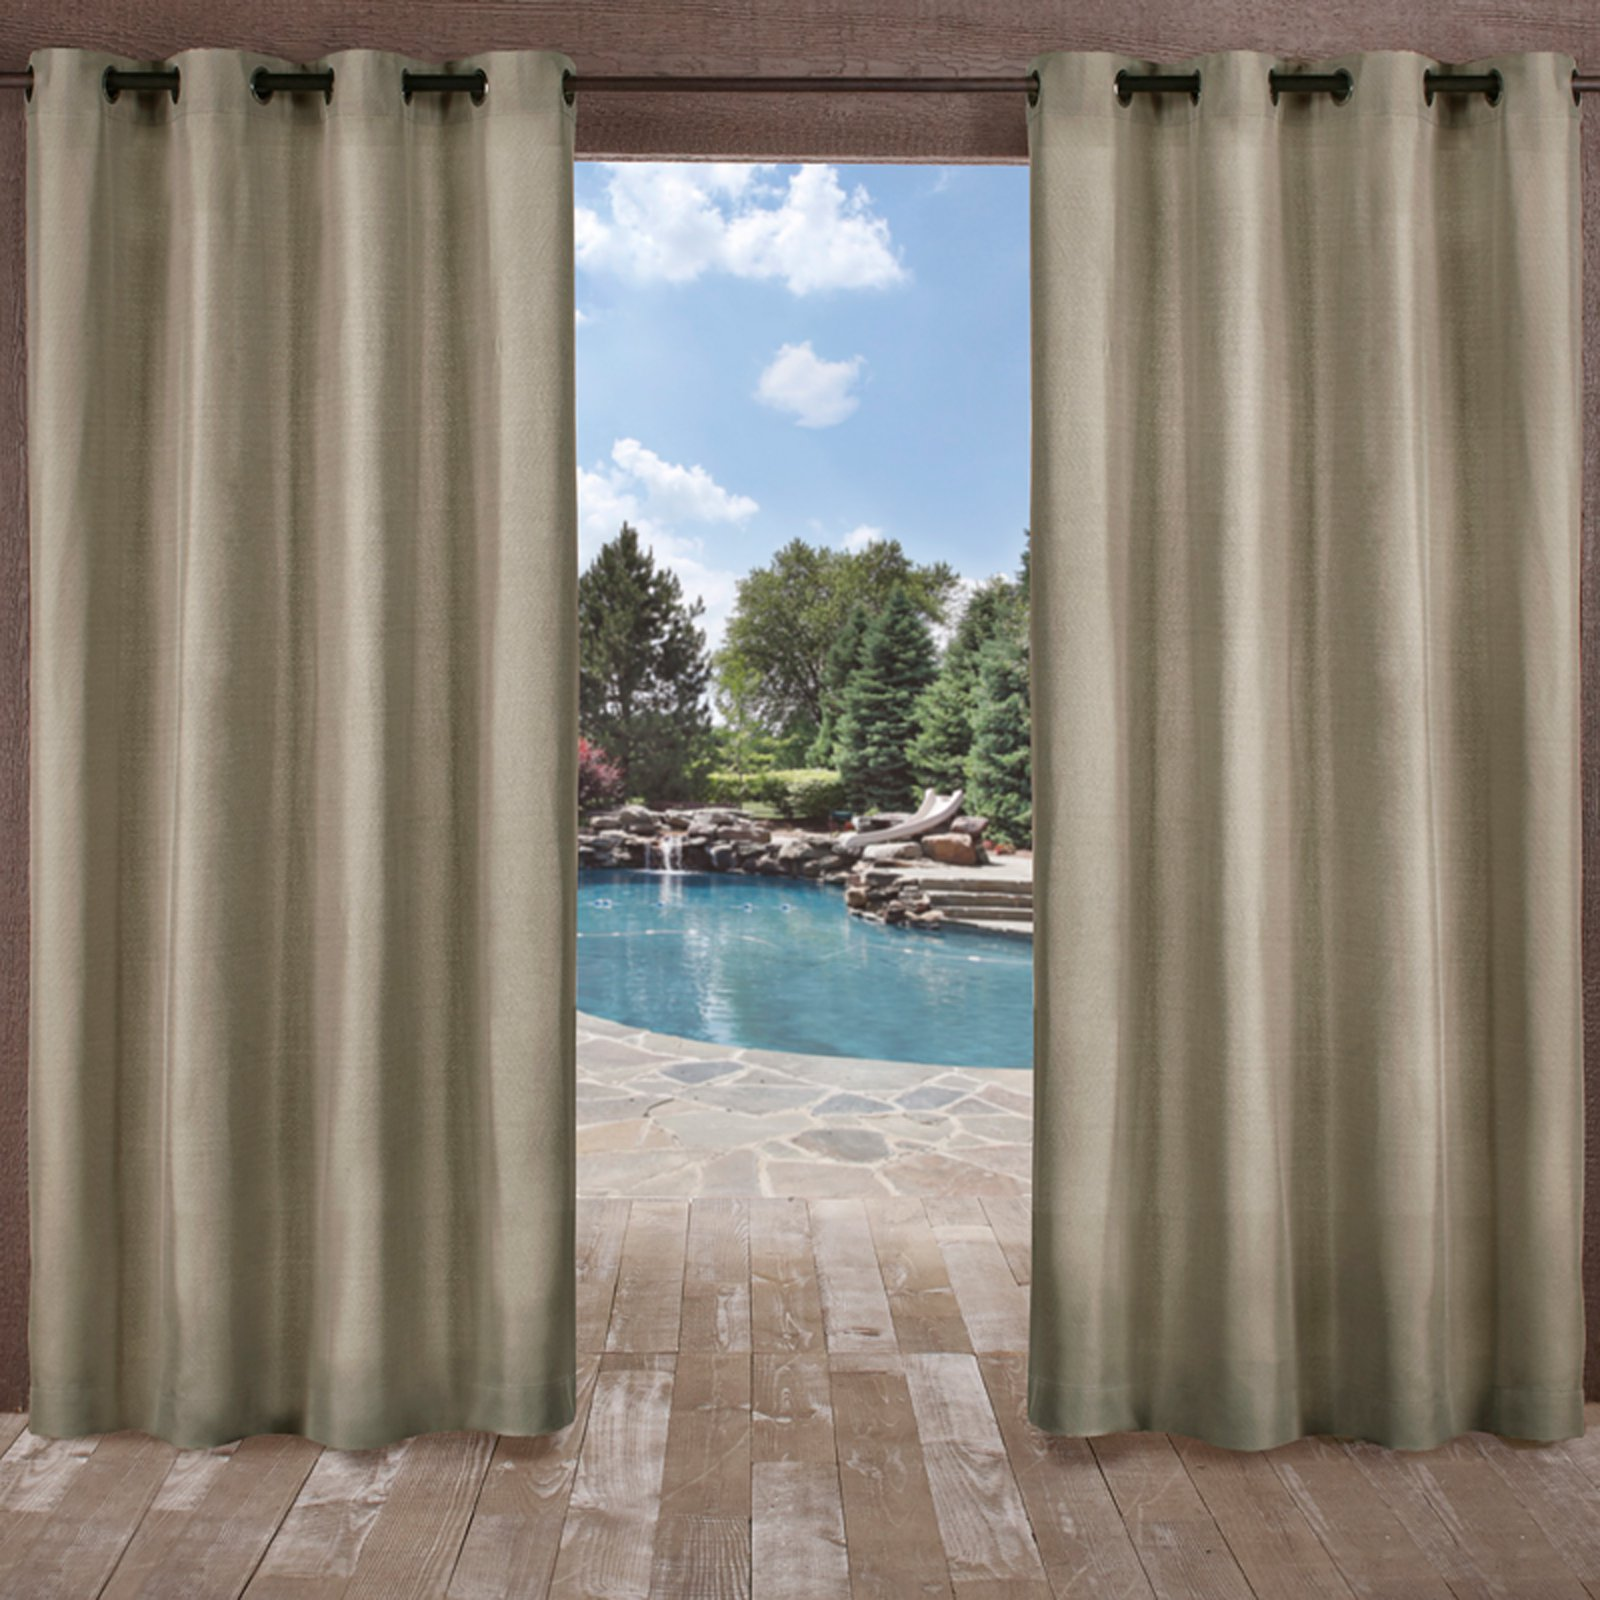 Exclusive Home Curtains 2 Pack Biscayne Indoor/Outdoor Two Tone Textured Grommet Top Curtain Panels